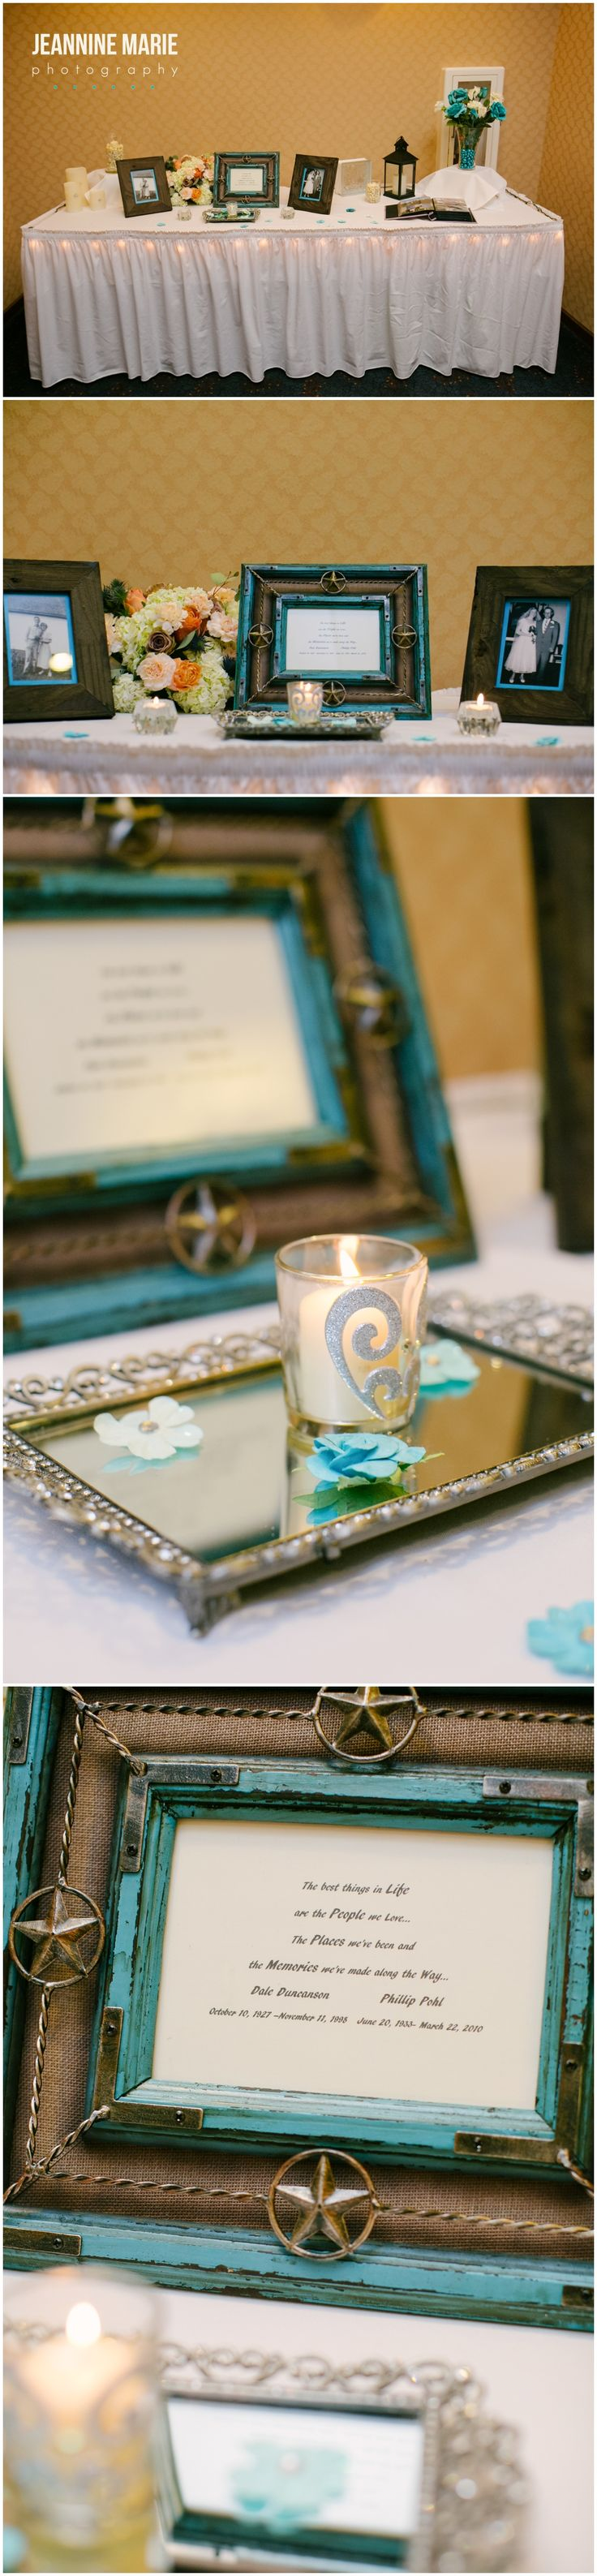 Wedding memorial table at reception at Jackpot Junction Casino Hotel photographed by Saint Paul wedding photographer Jeannine Marie Photography #memorabilia #memorialtable #inloveingmemory #weddingideas #weddingreception #twincitiesweddingphotographer #jeanninemariephotography